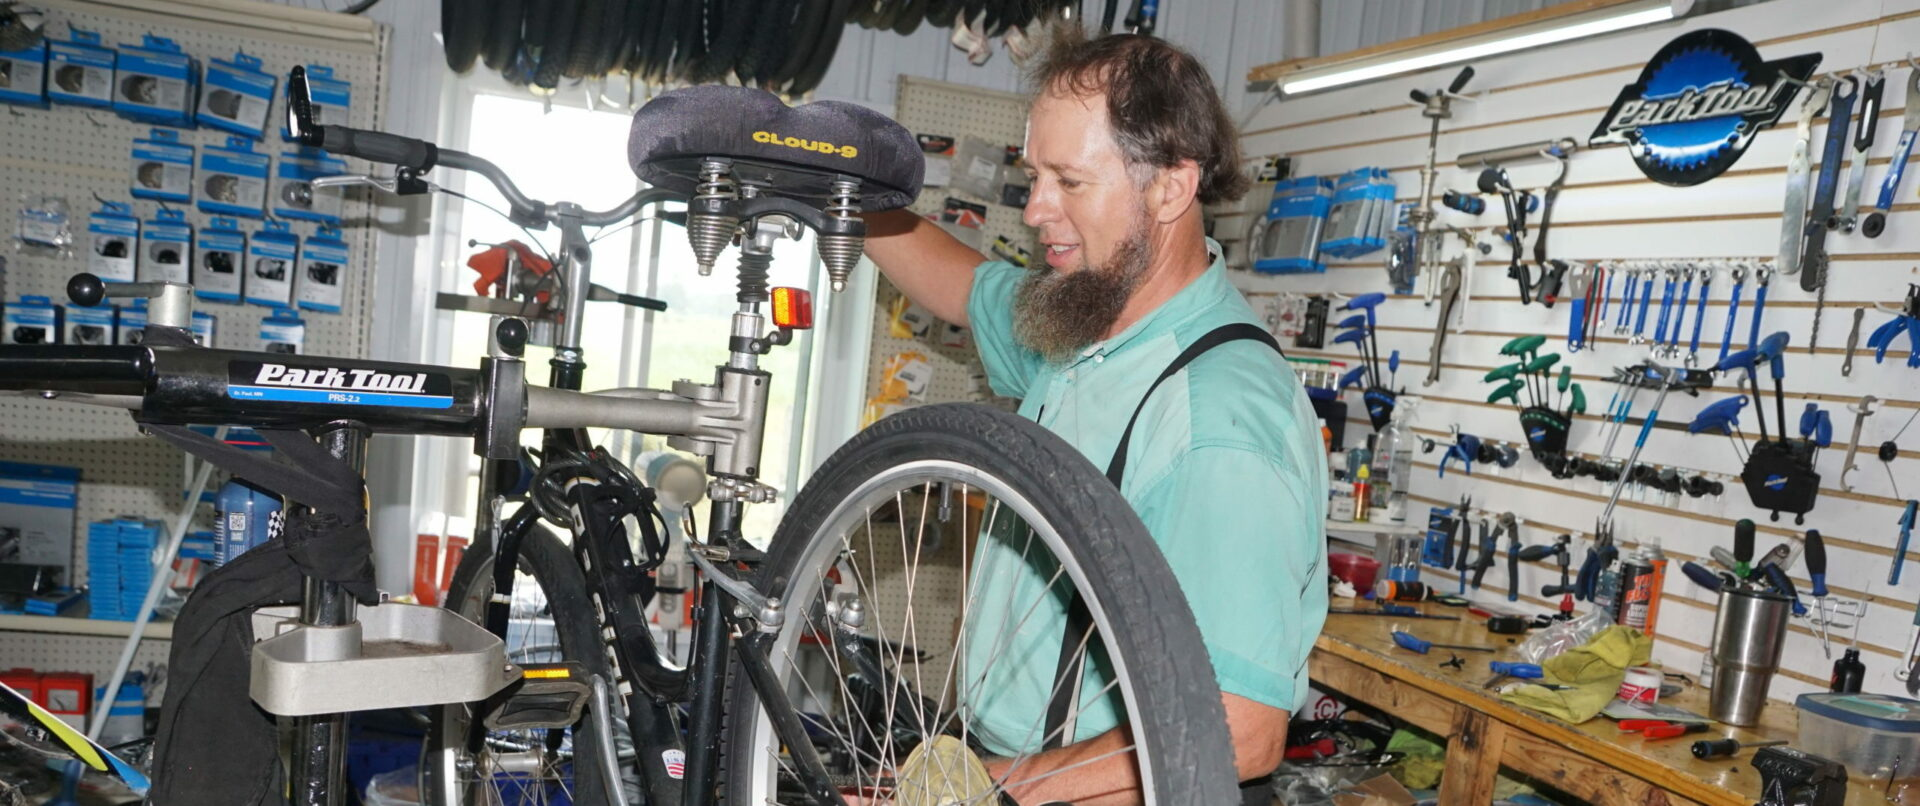 It's more than sales and service that drives Joe Bontreger at Central Cycles